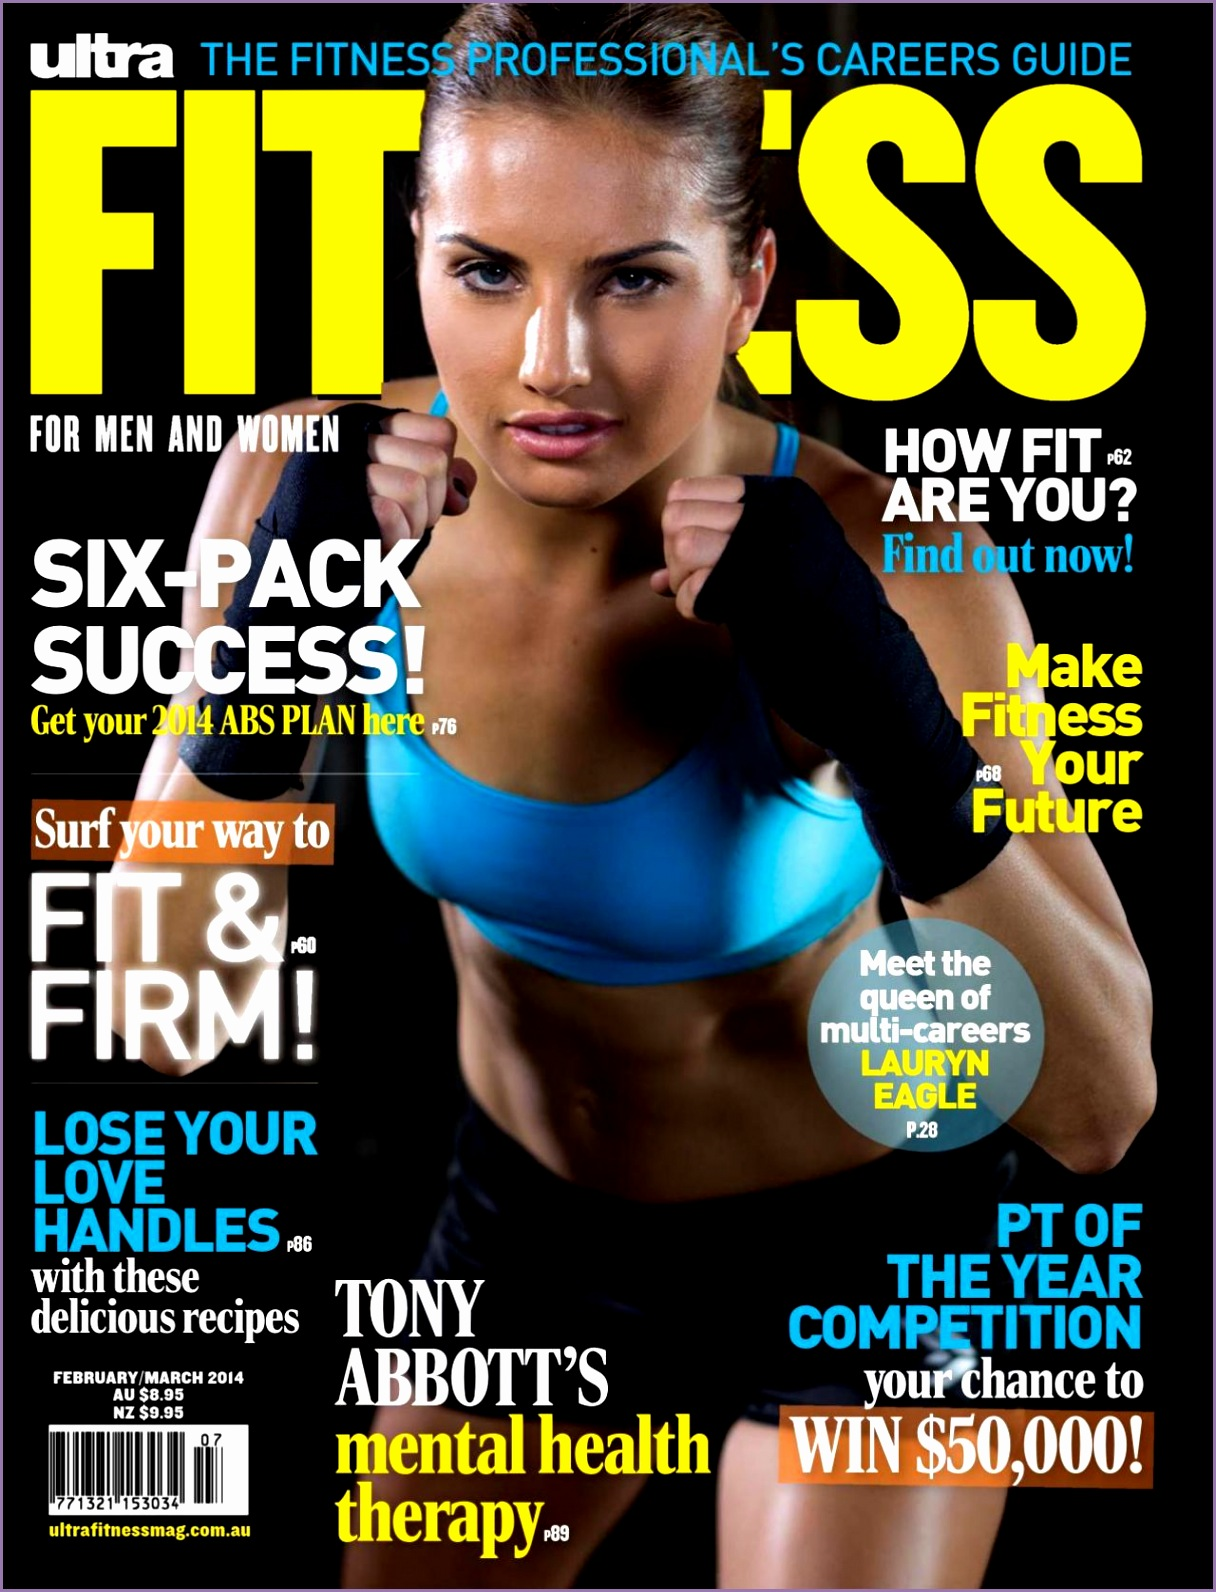 lauryn eagle ultra fitness magazine february march 2014 issue 1